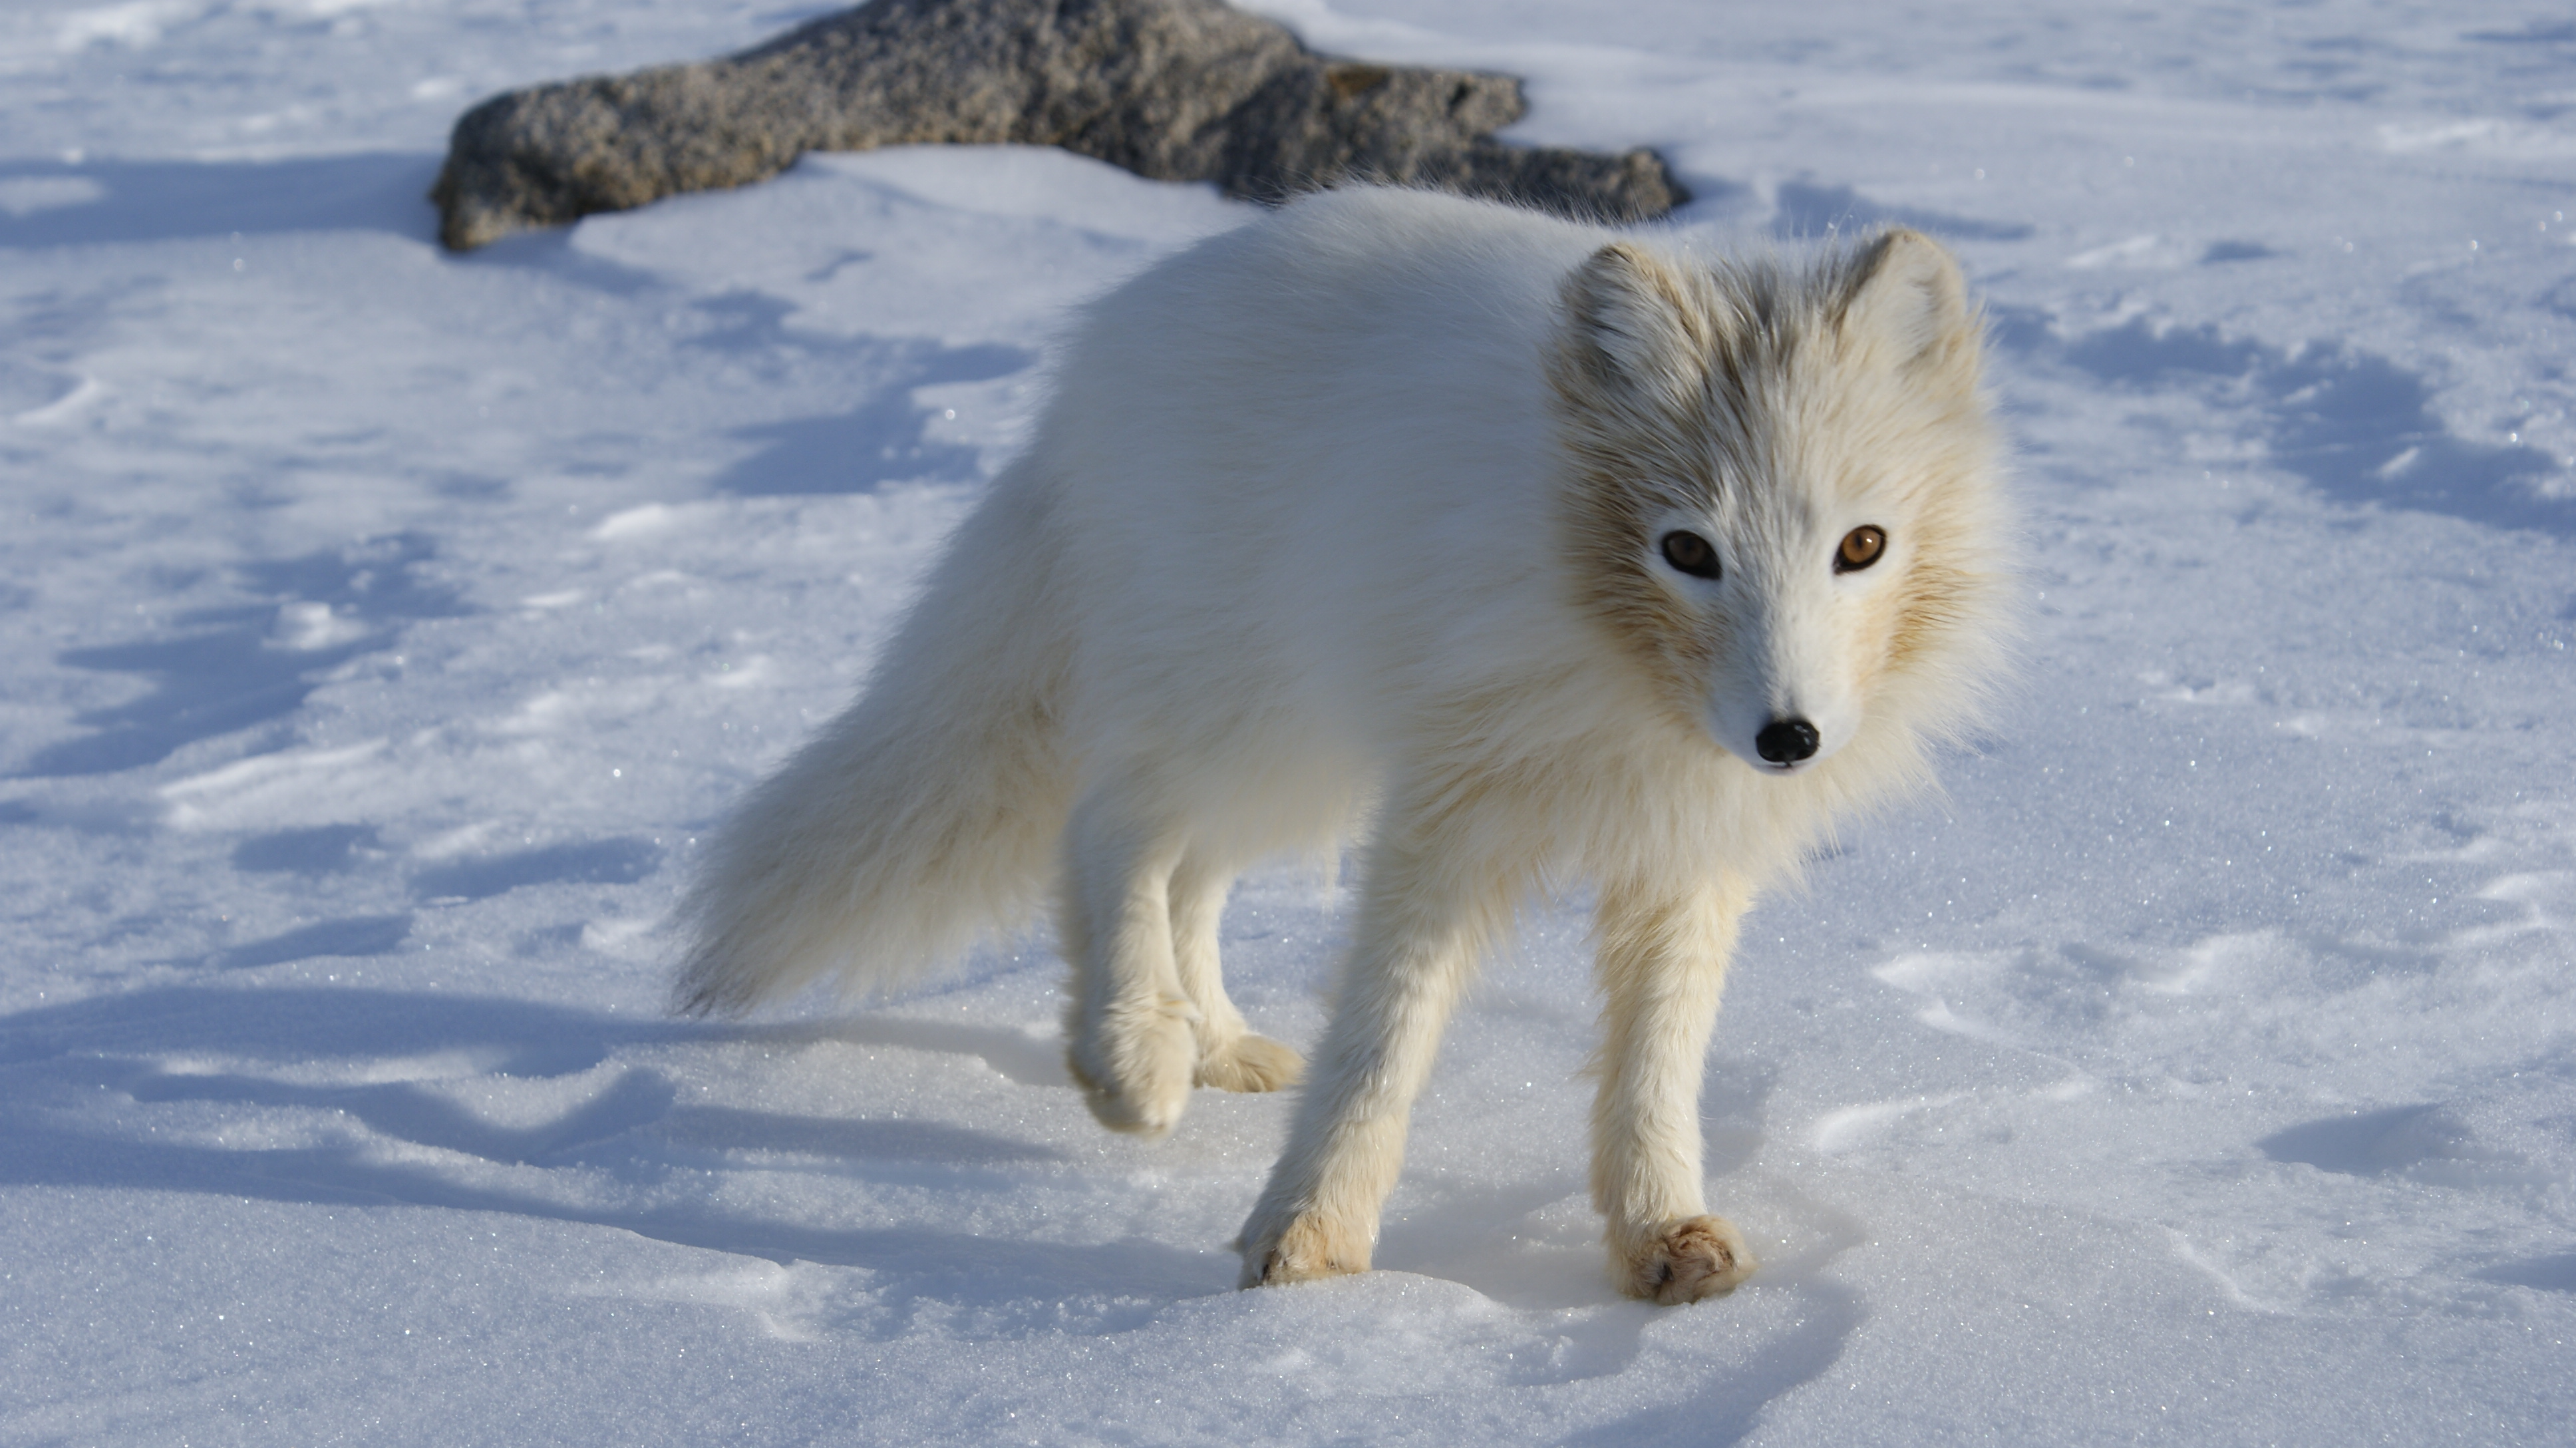 foxes animals most fox arctic ever wikipedia liška polarni things wikimedia comments